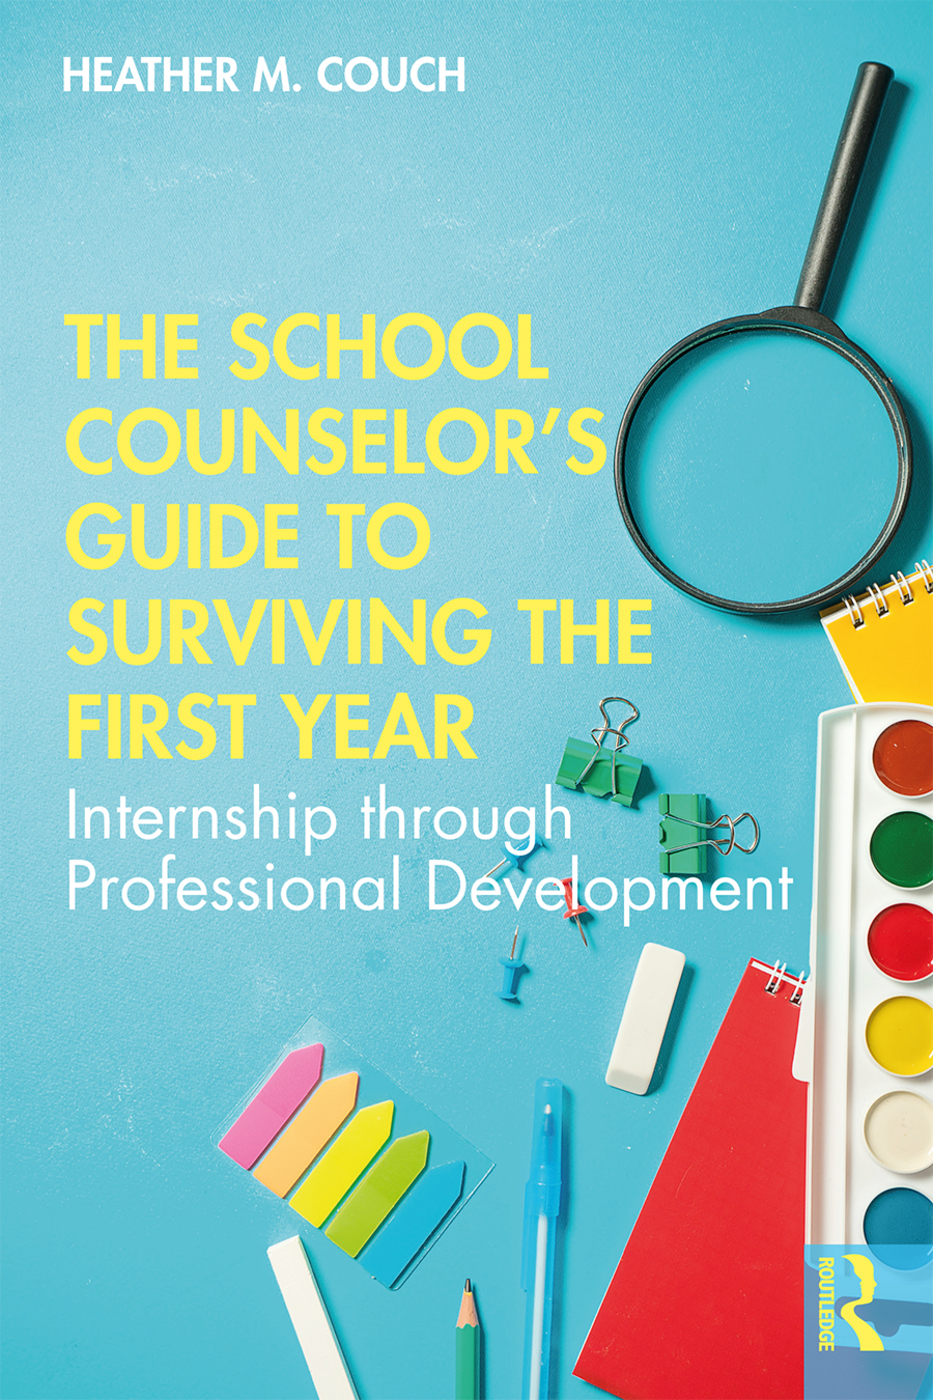 The School Counselor's Guide to Surviving the First Year: Internship through Professional Development book cover